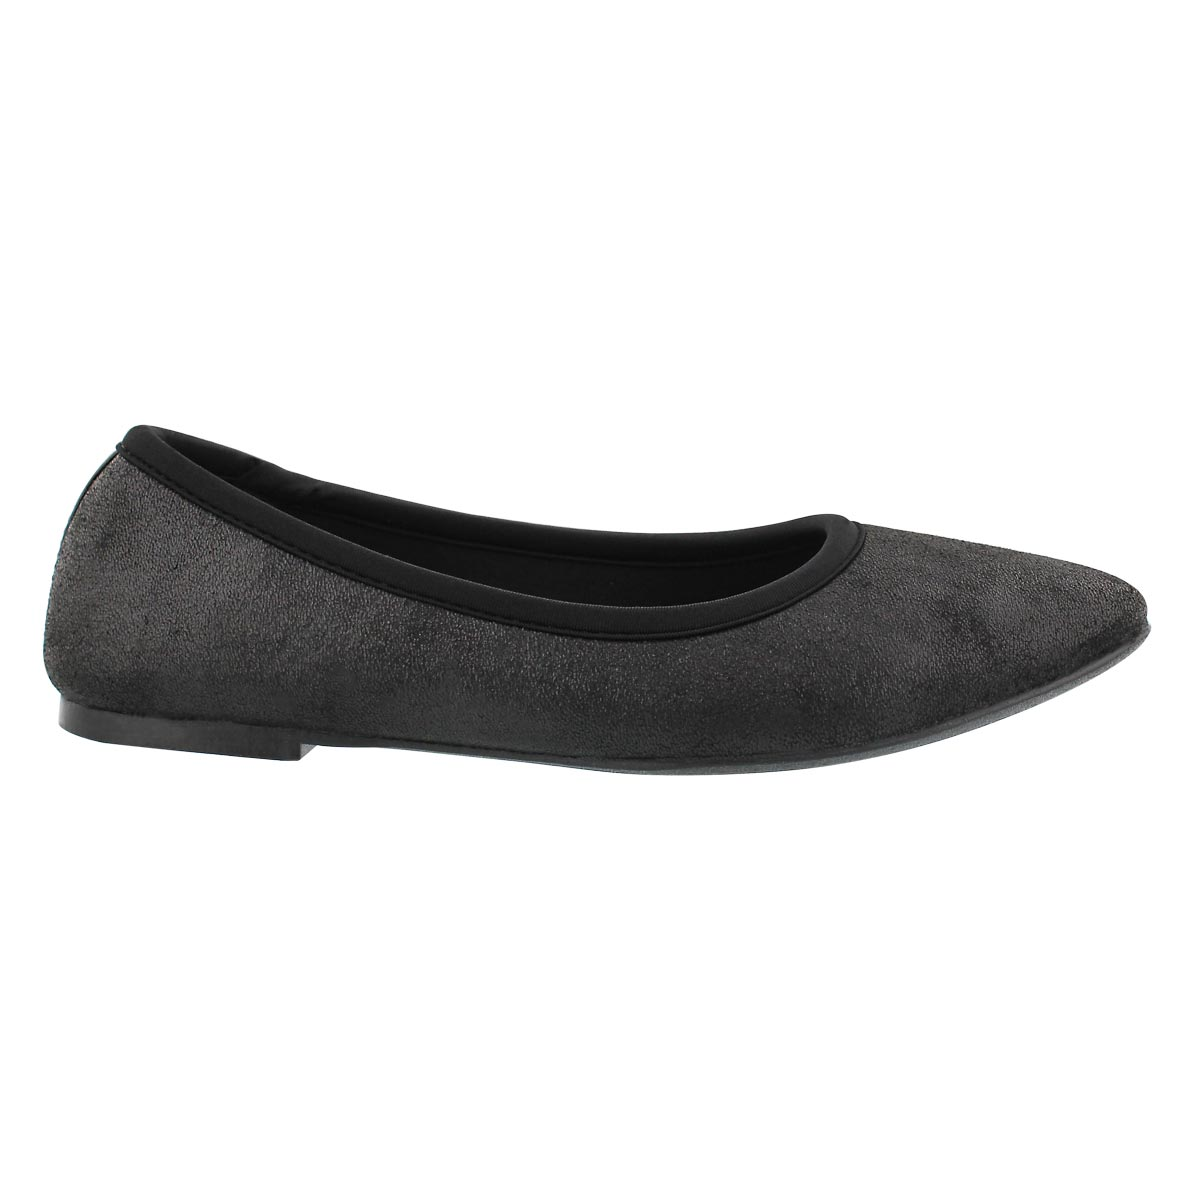 Lds Cleo Sincere black casual flat